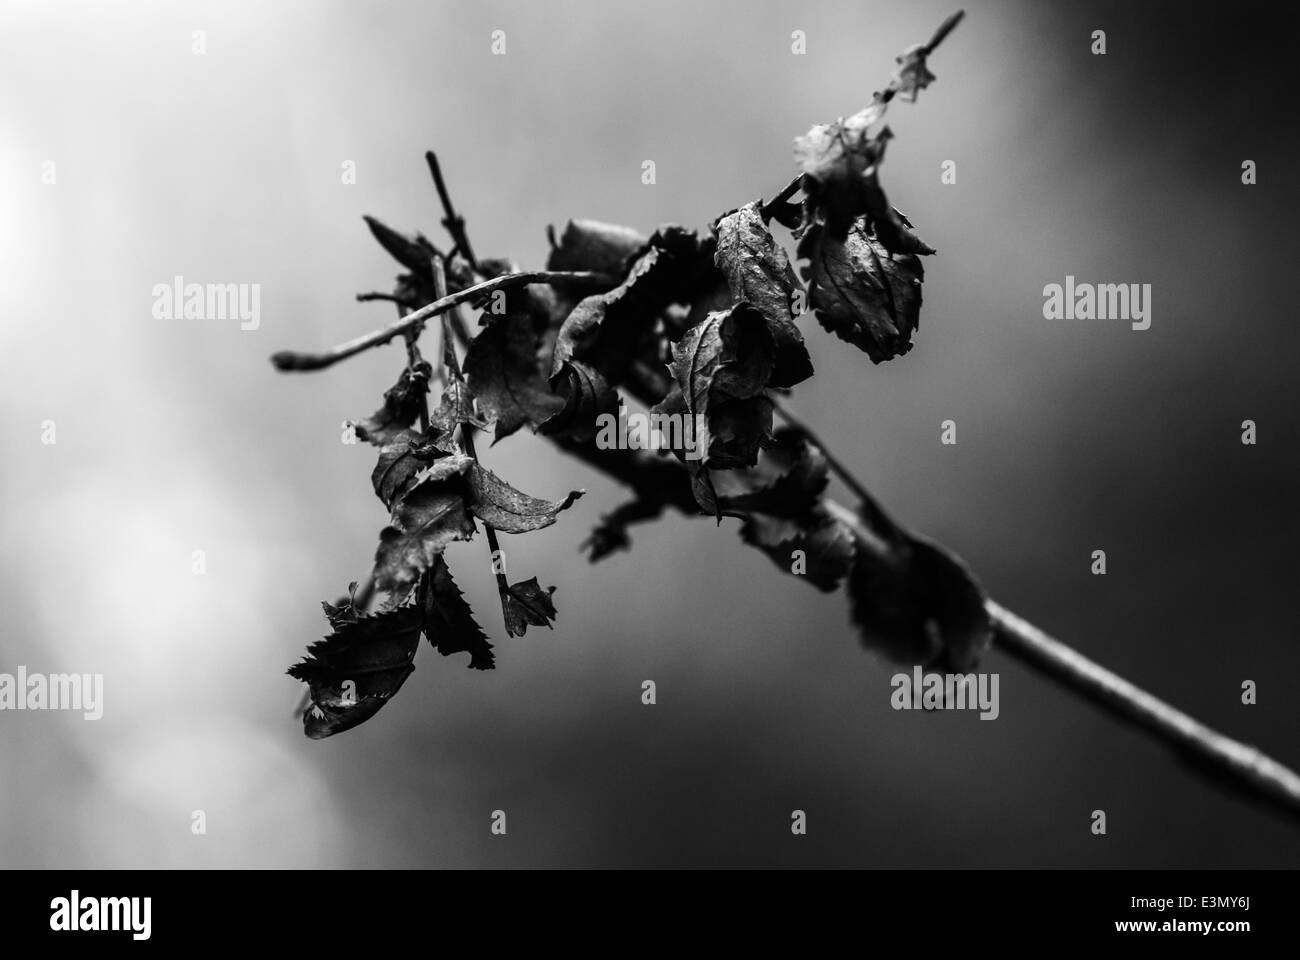 A close up black and white shot of a dead branch with leaves against a warm evening background. - Stock Image